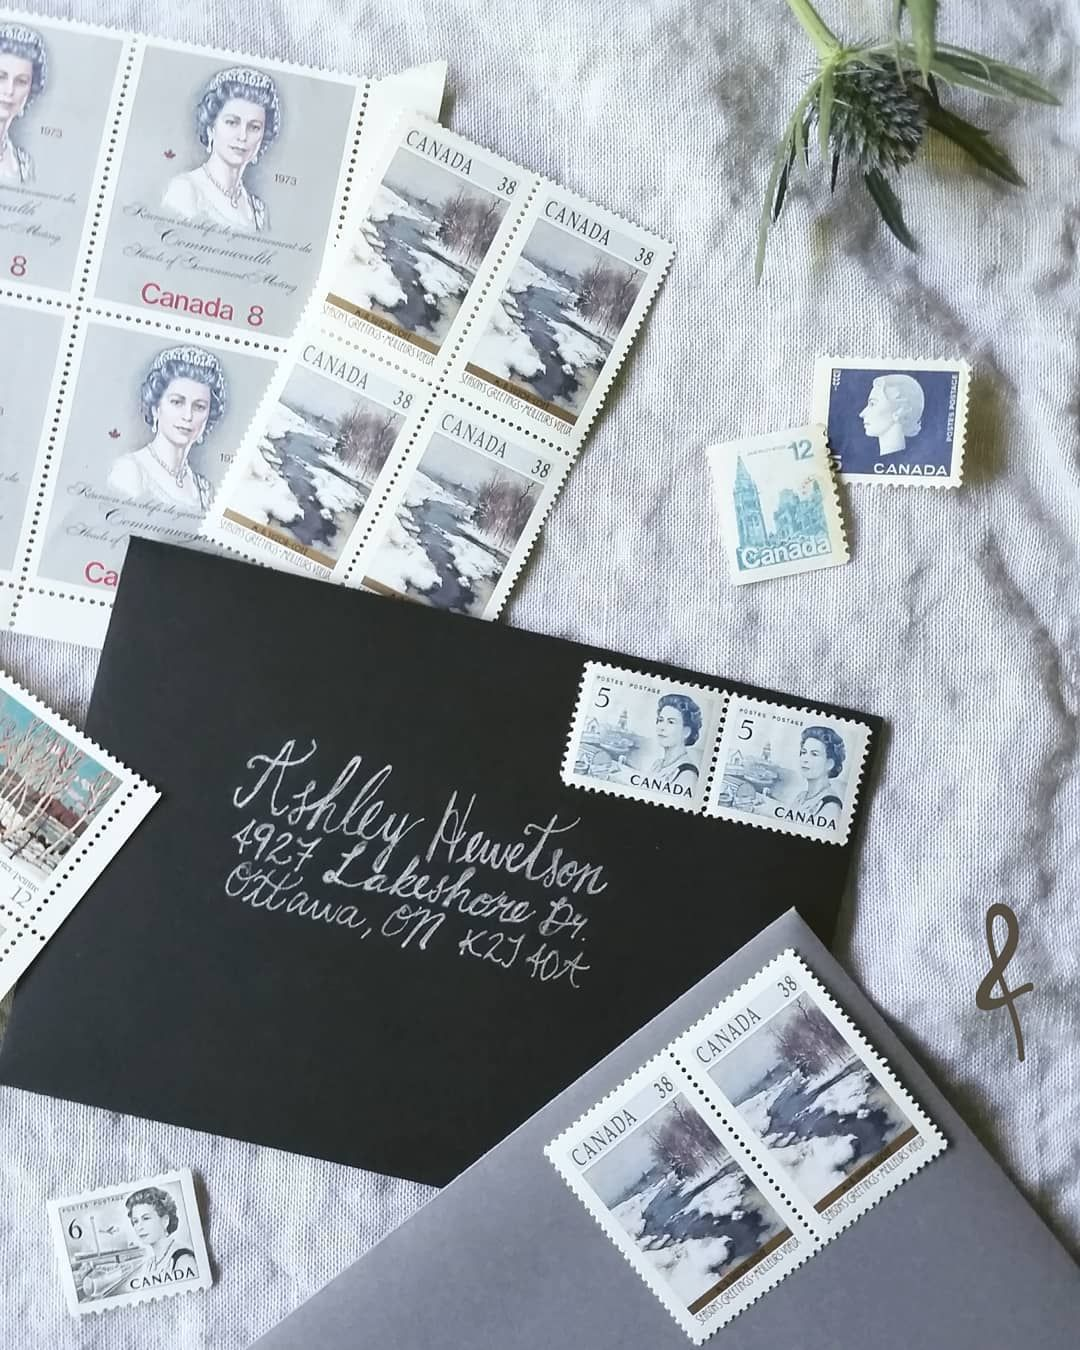 A selection of Canadian vintage stamps in shades of grey